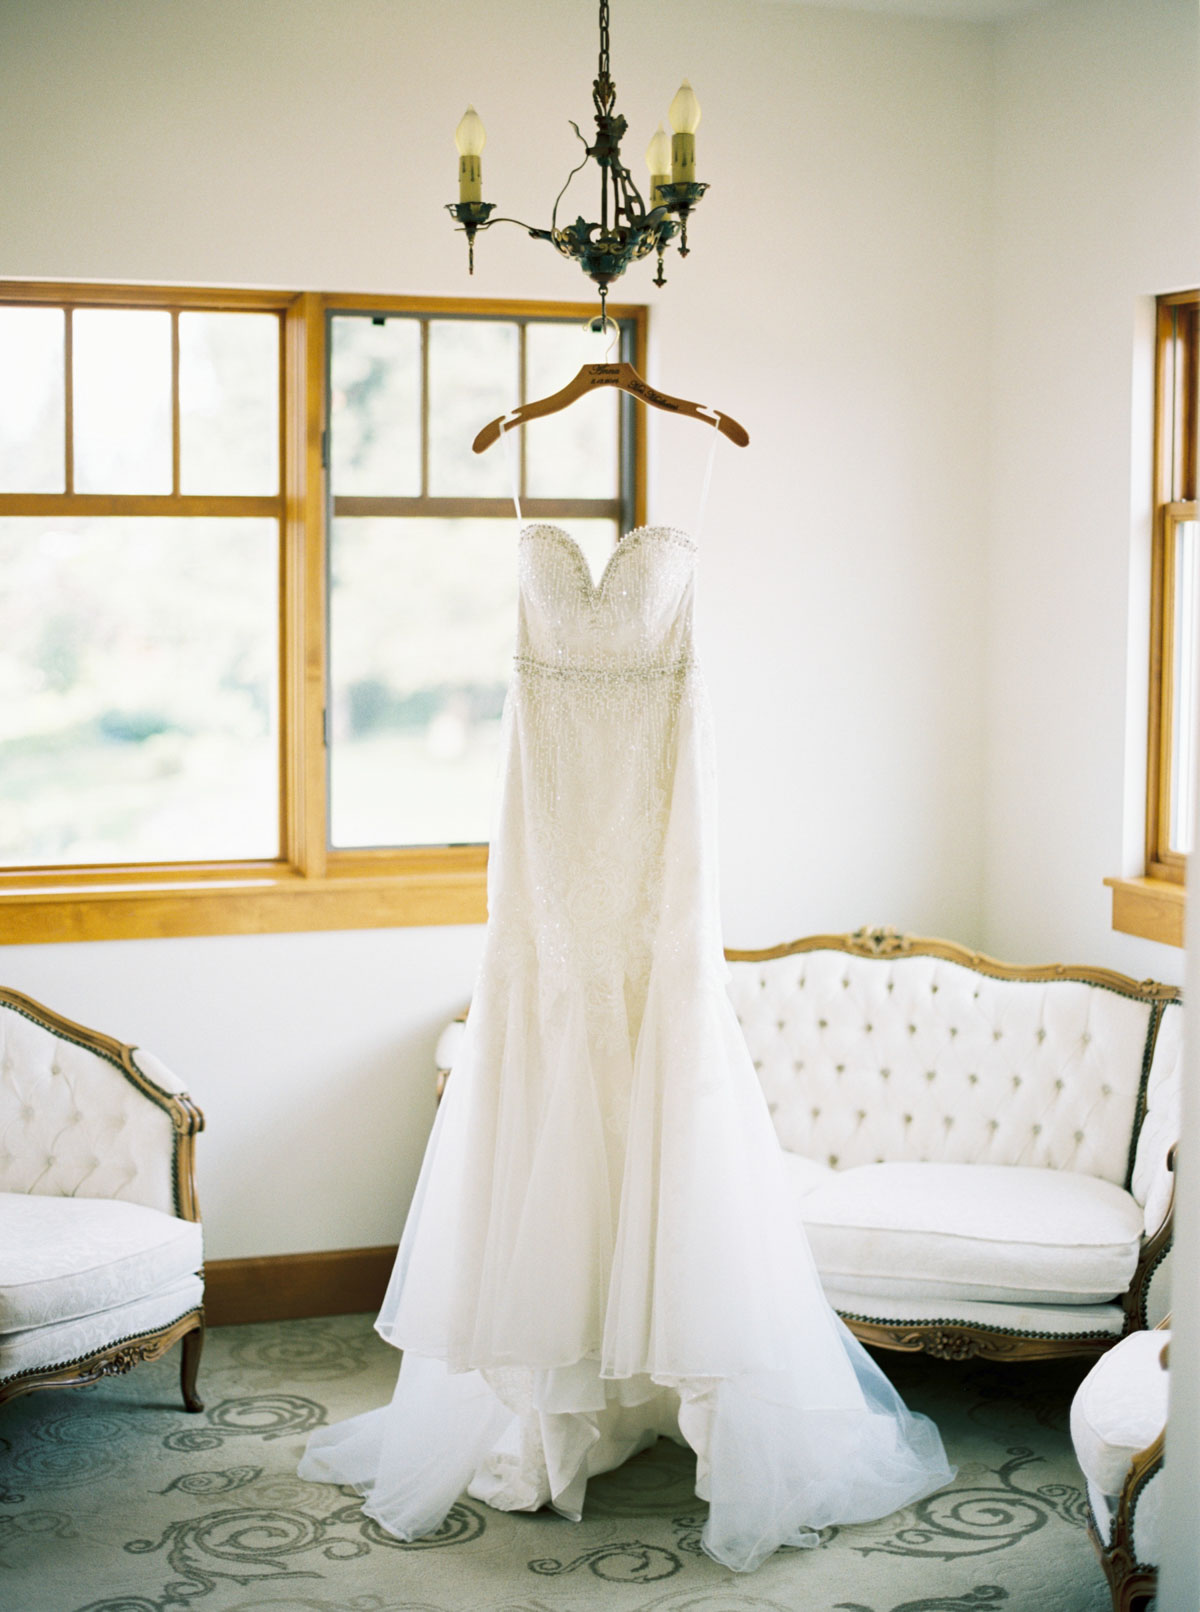 Beaded strapless bridal gown at Arbor Crest Winery captured by Spokane Wedding Photographer Anna Peters